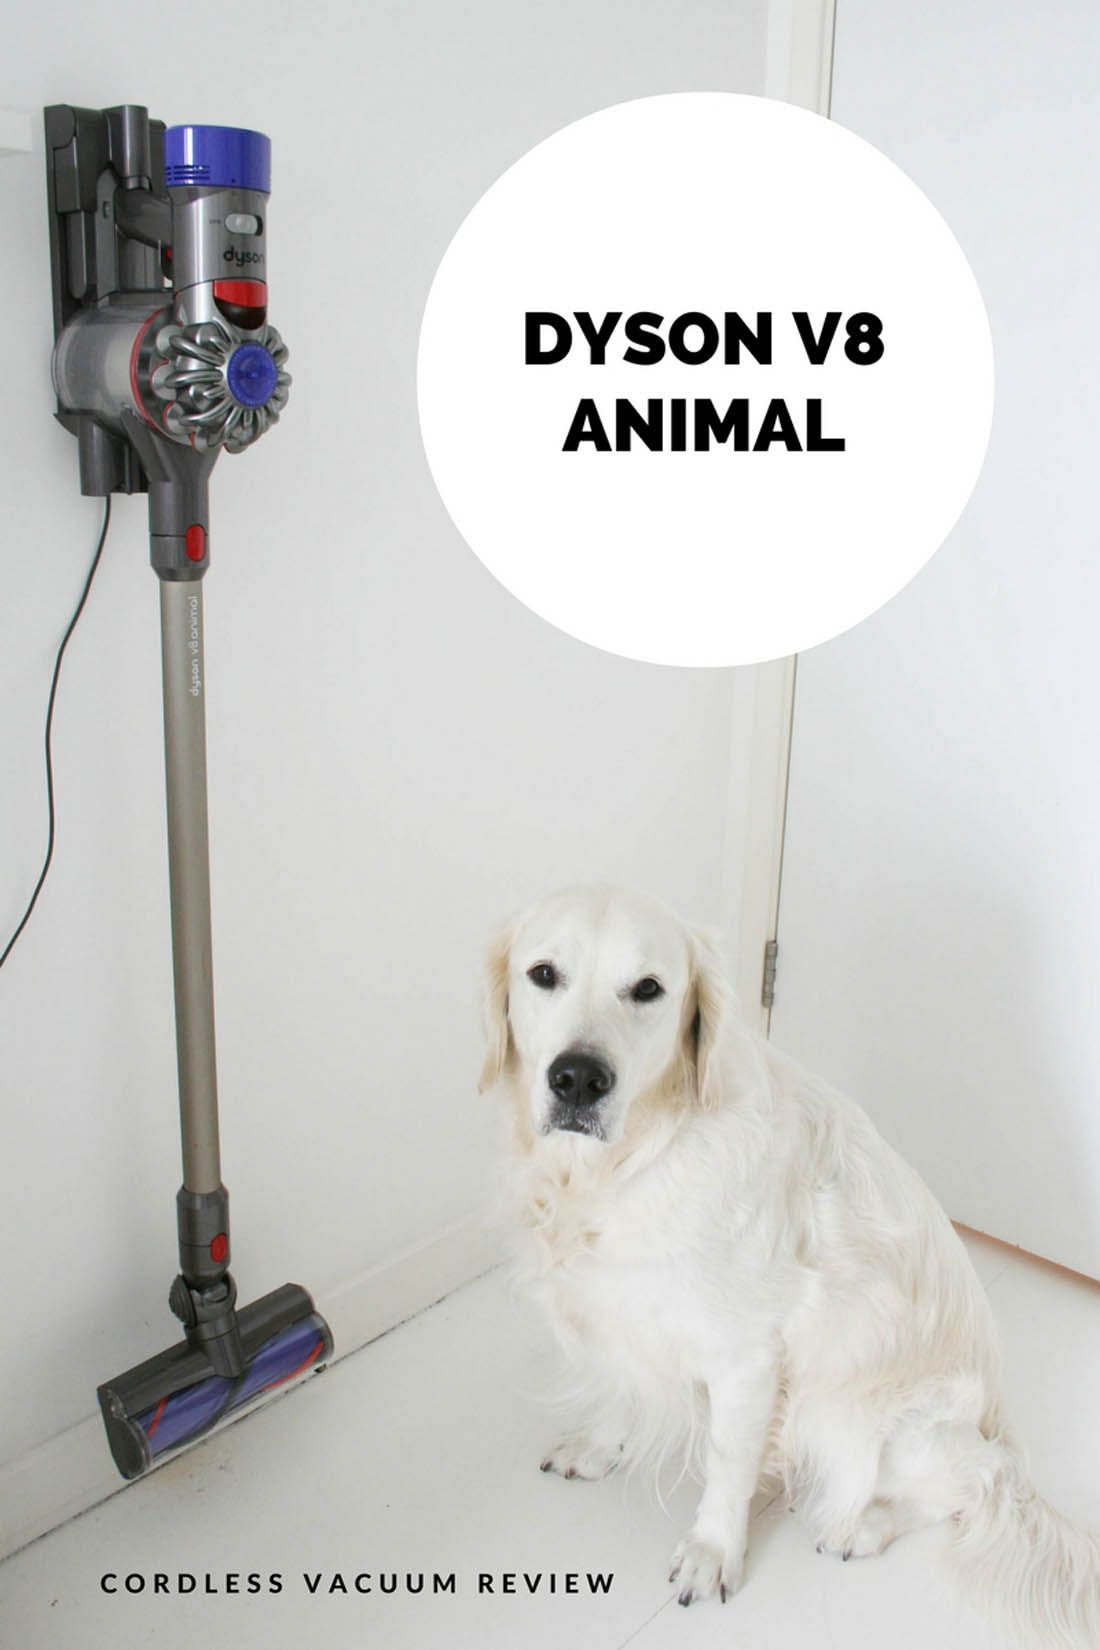 Dyson V8 Avis Dyson V8 Animal Cordless Vacuum Review How To Keep Your House